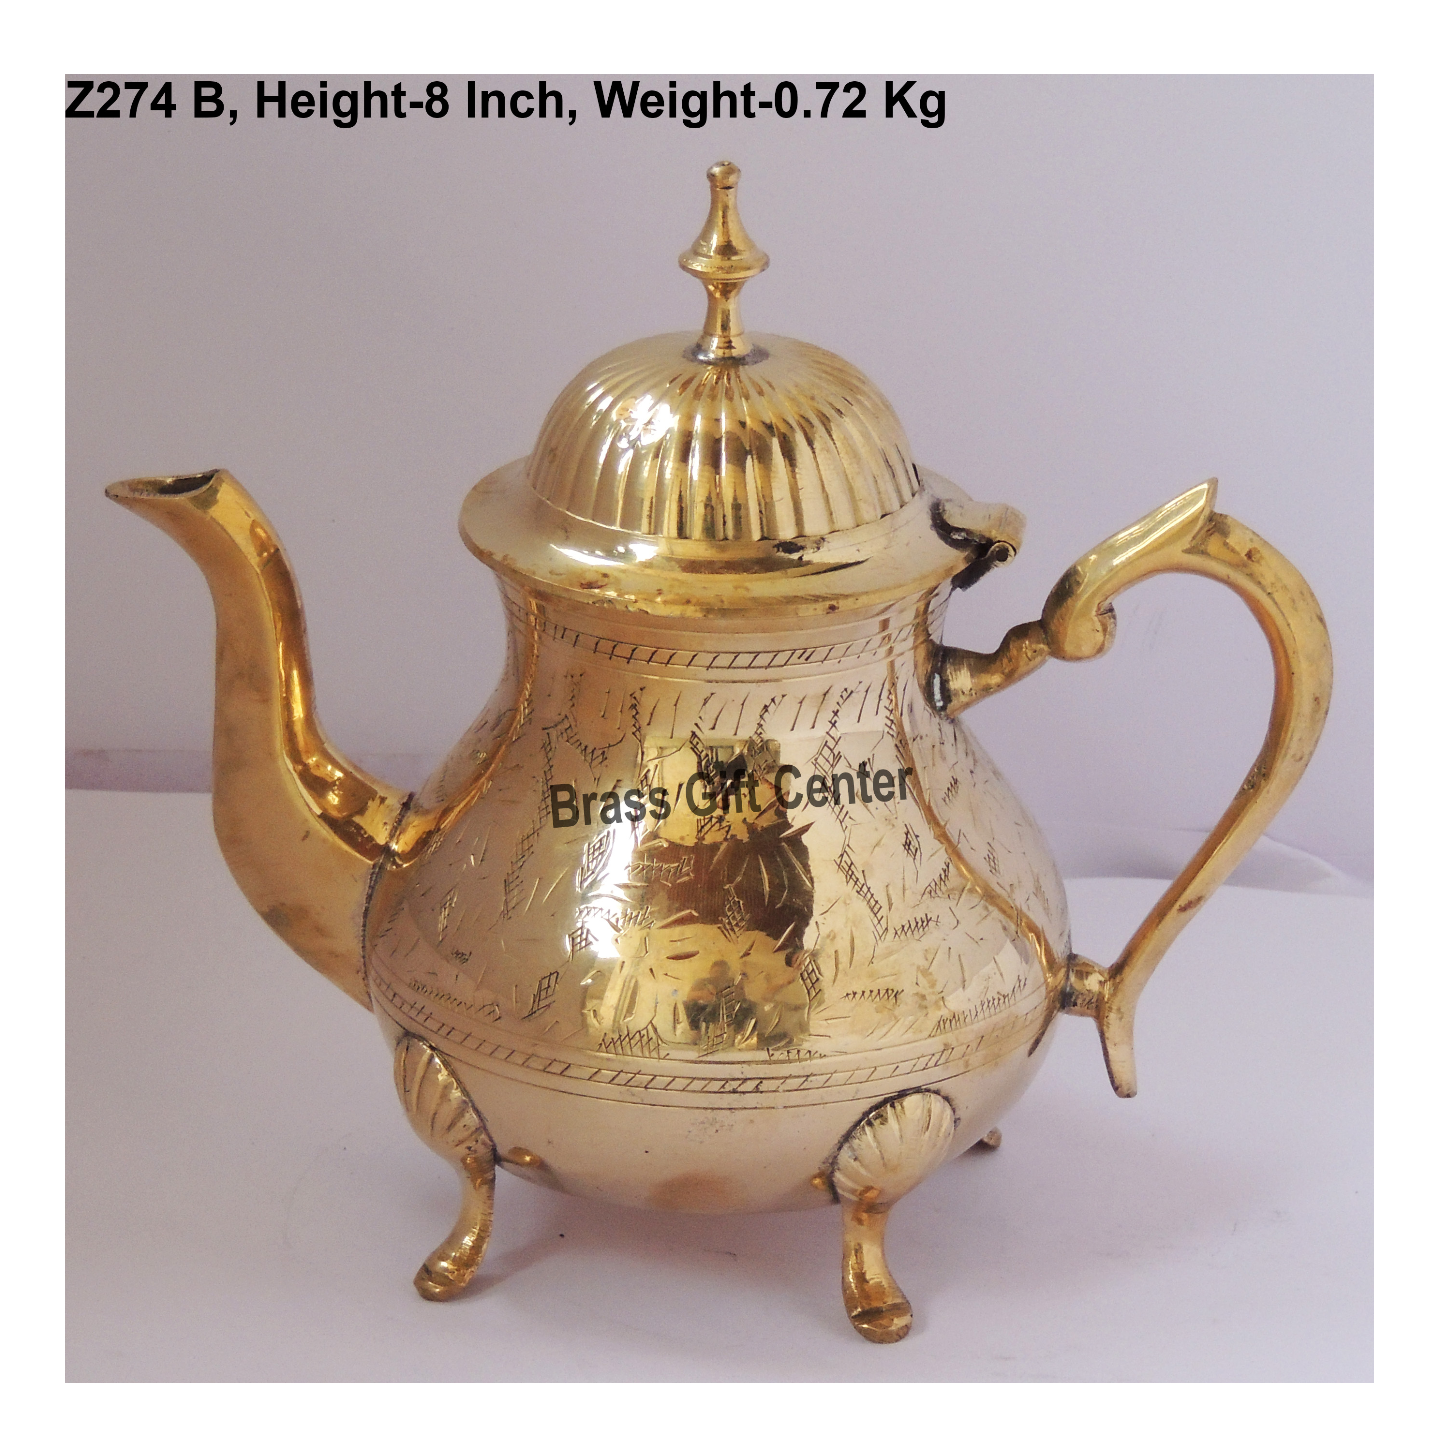 Brass Tea Pot Kettle 650 Ml -  8*5*8 Inch  (Z274 B)